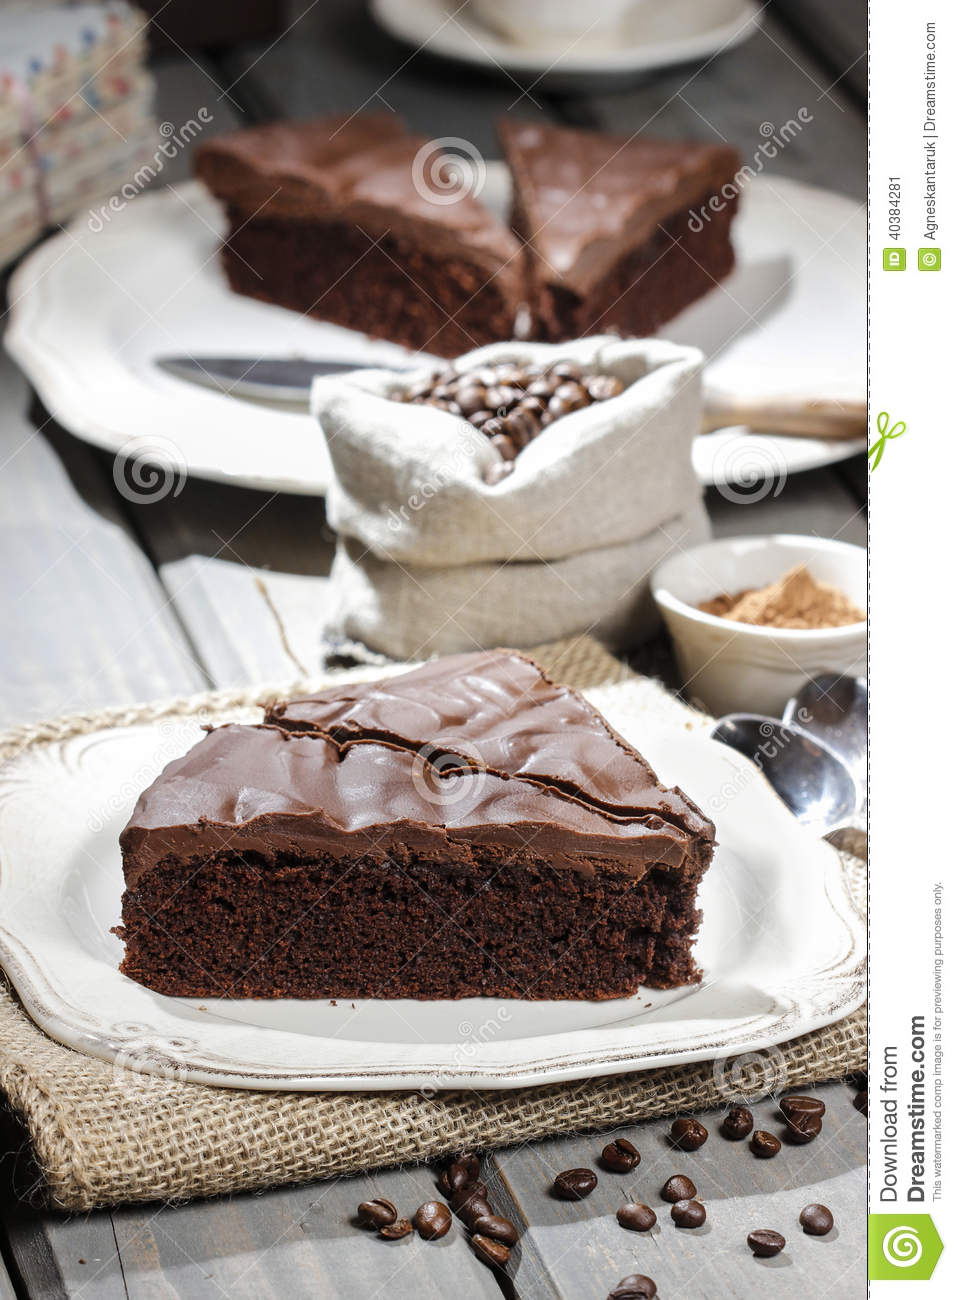 Chocolate cake on white plate, on hessian